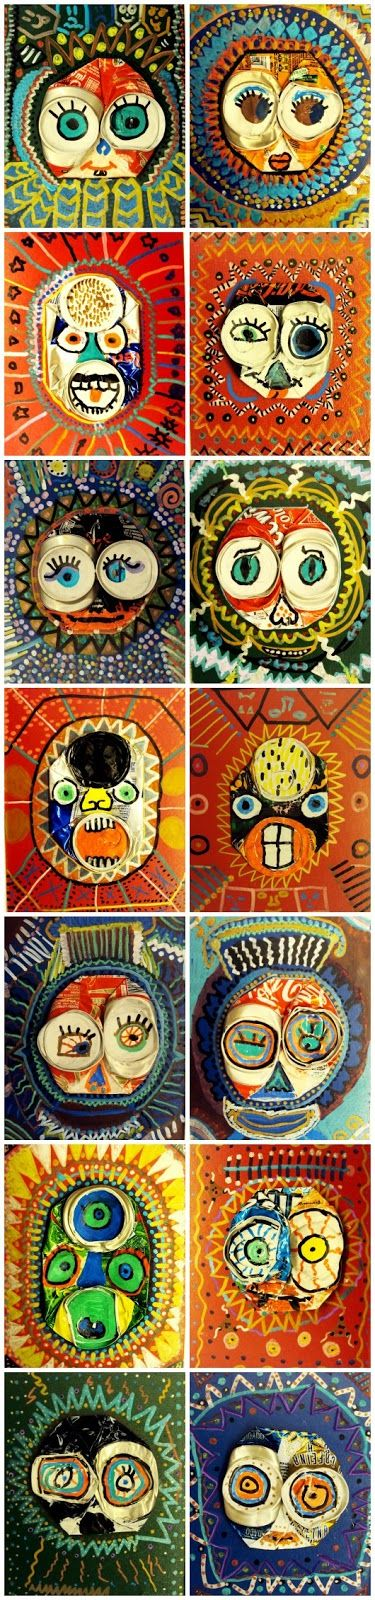 Plastiquem: LLAUNES PINTADES  Faces made from flattened soda cans